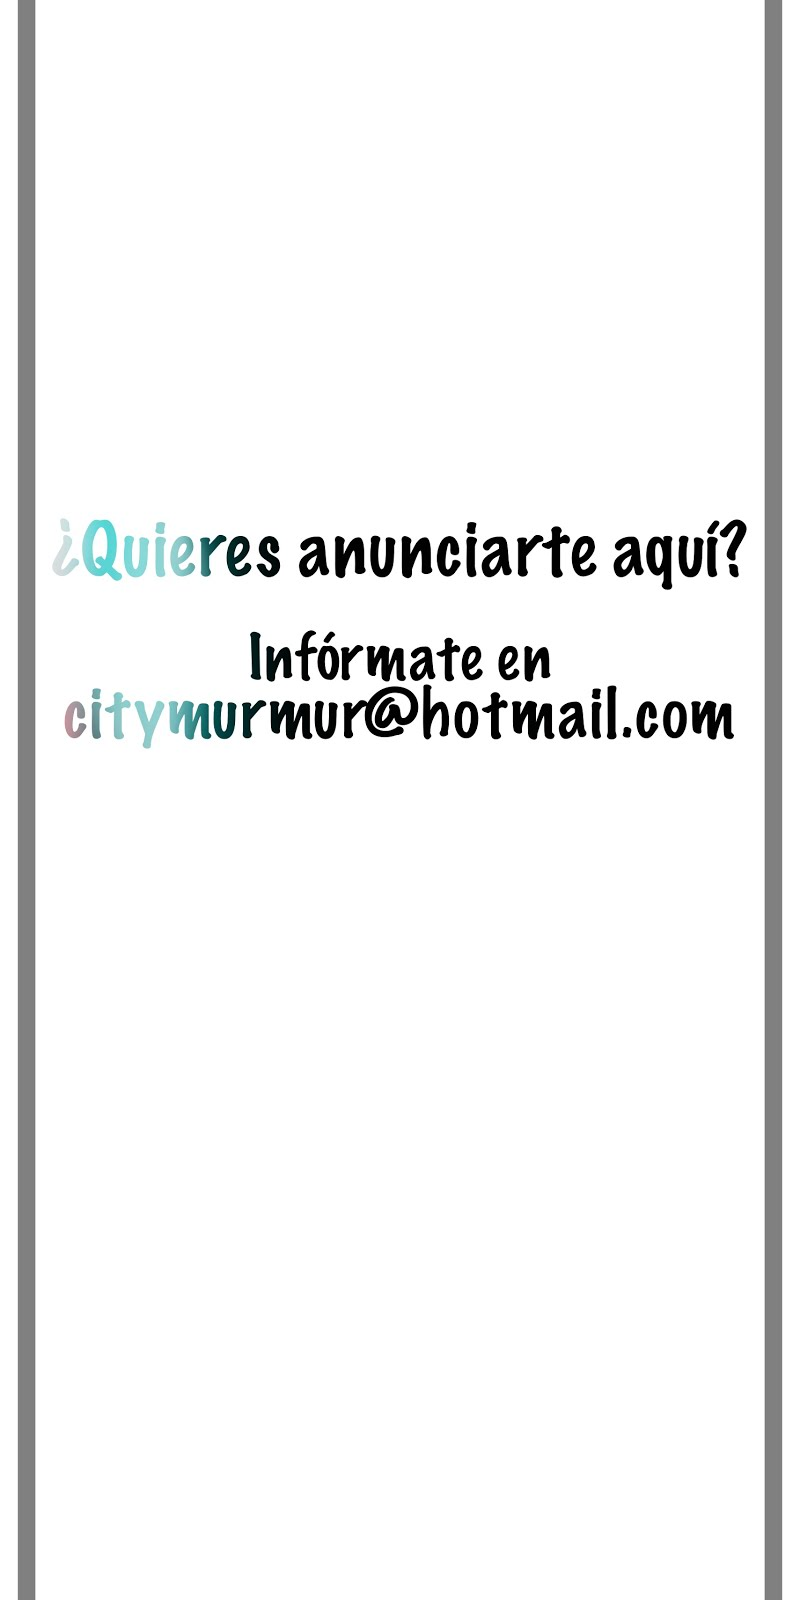 ¿Quieres que te vean?